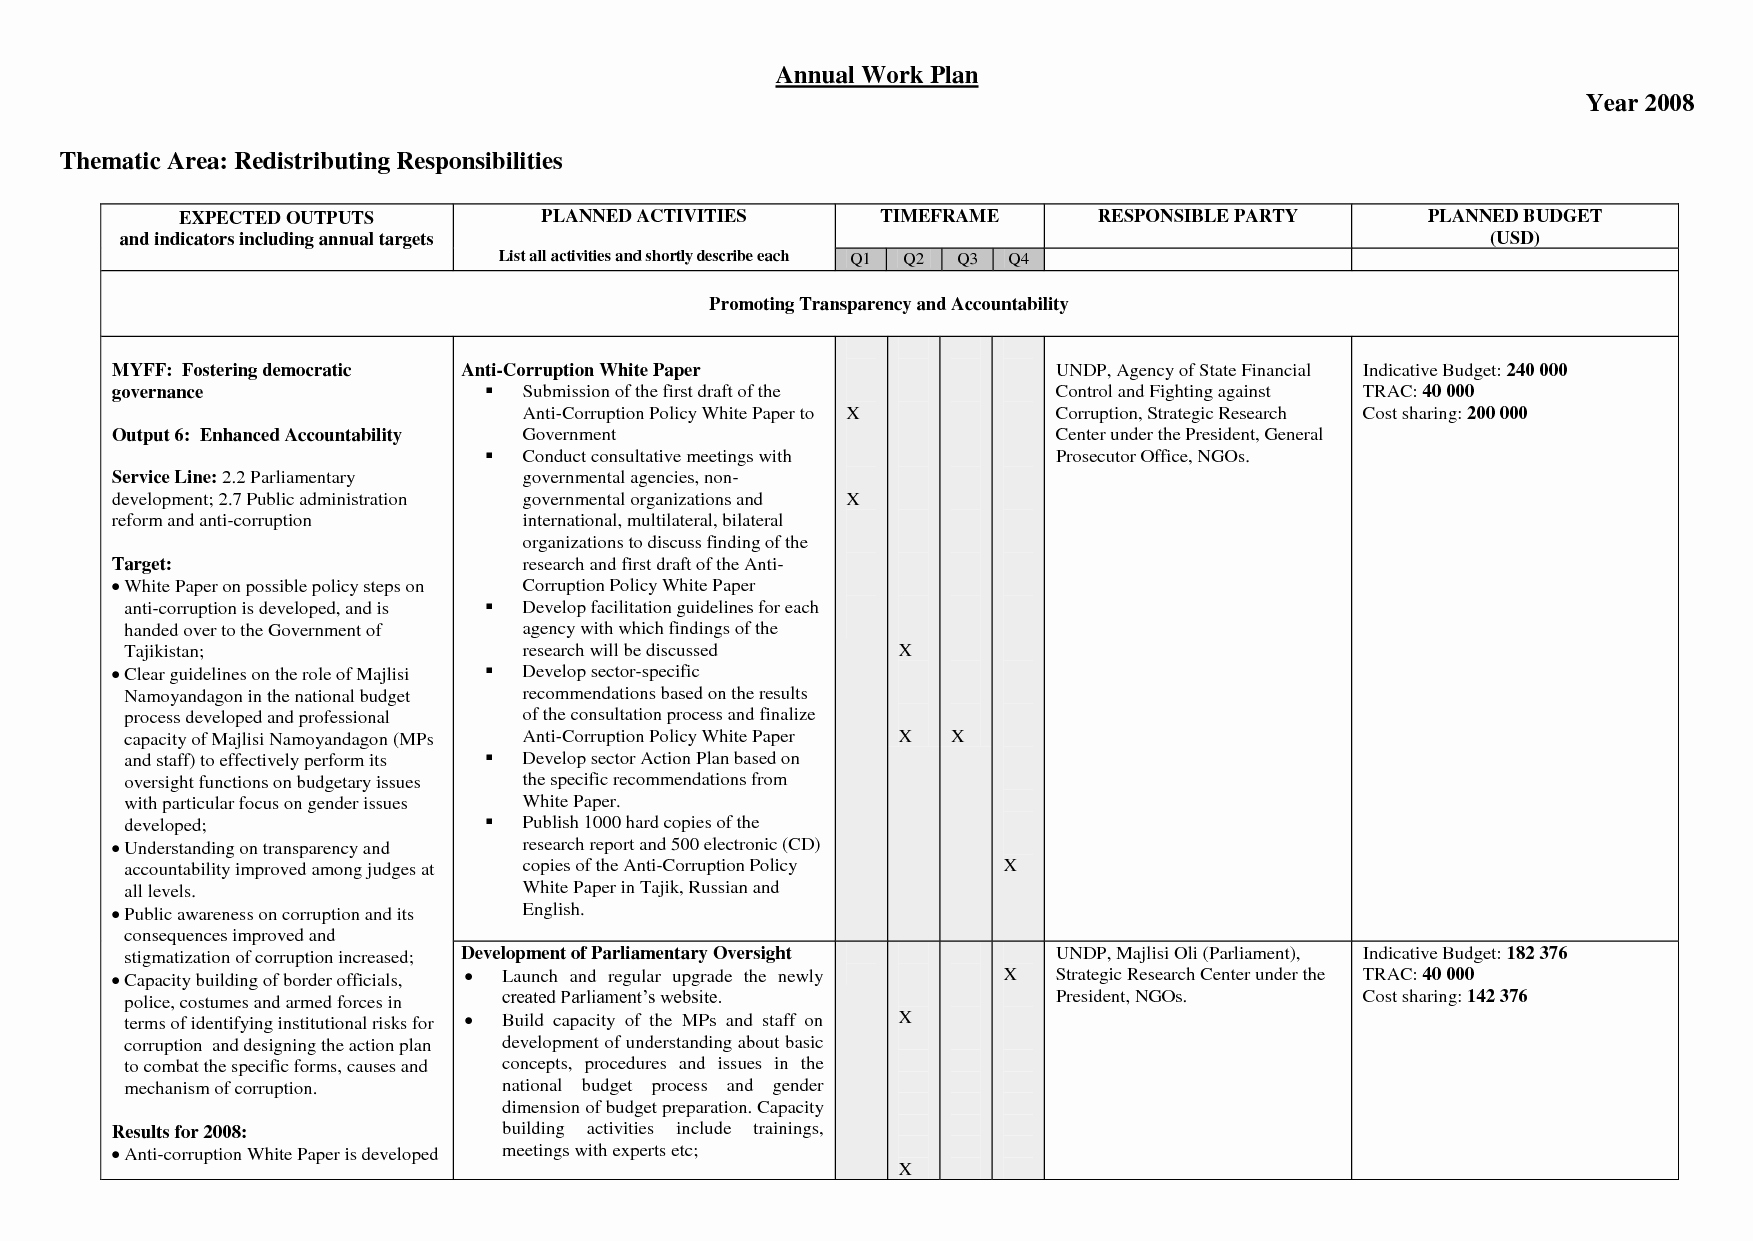 Annual Work Plan Template Inspirational Best S Of Annual Work Plan Template Excel Annual Training Plan Template Annual Work Plan